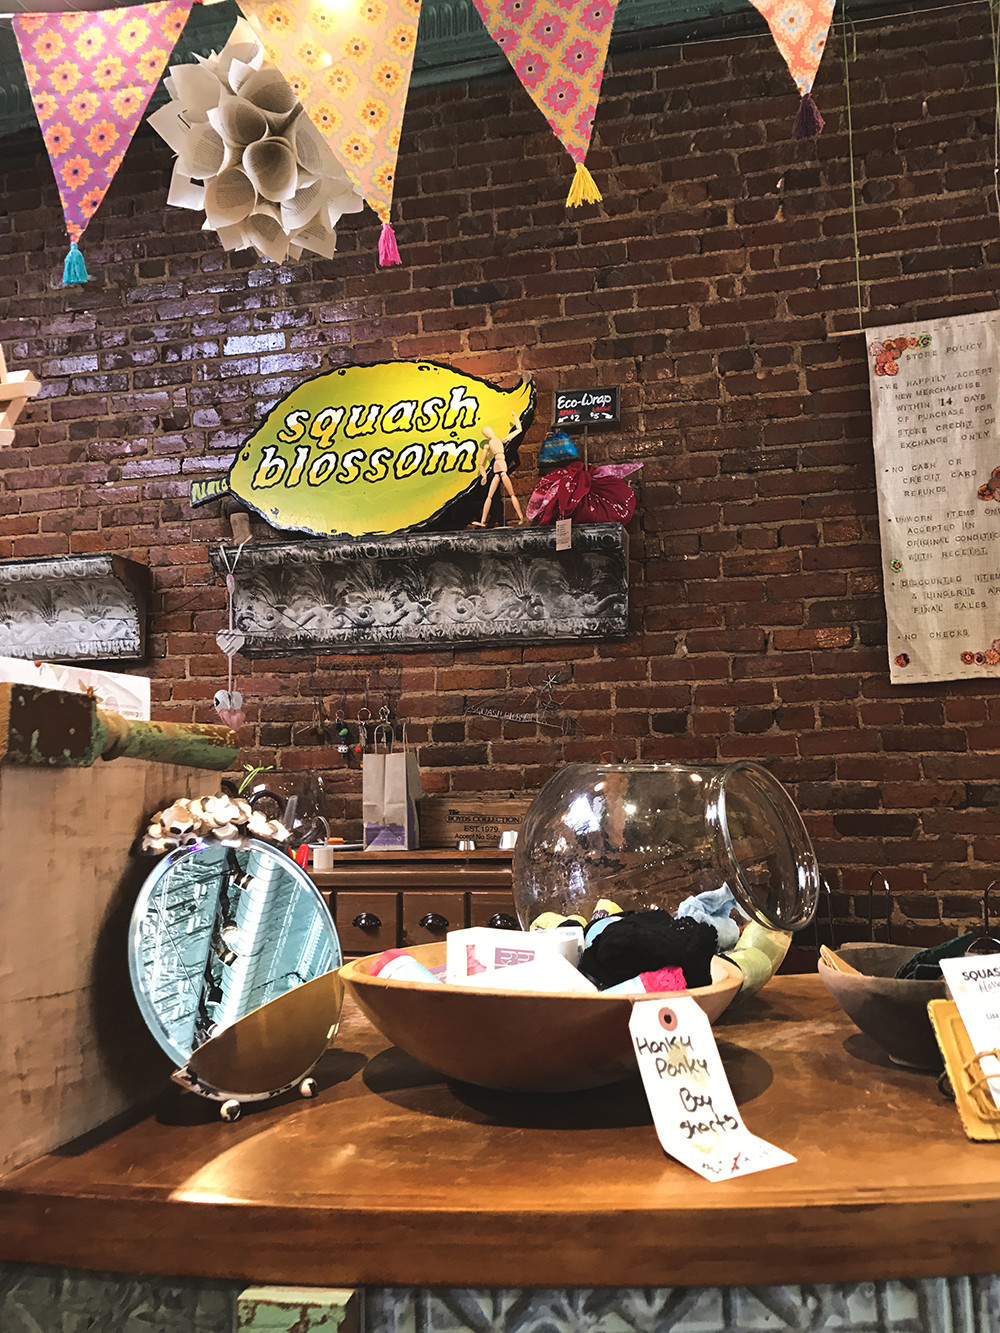 SamiM Adventures Decatur, where it's greater! Squash Blossom boutique